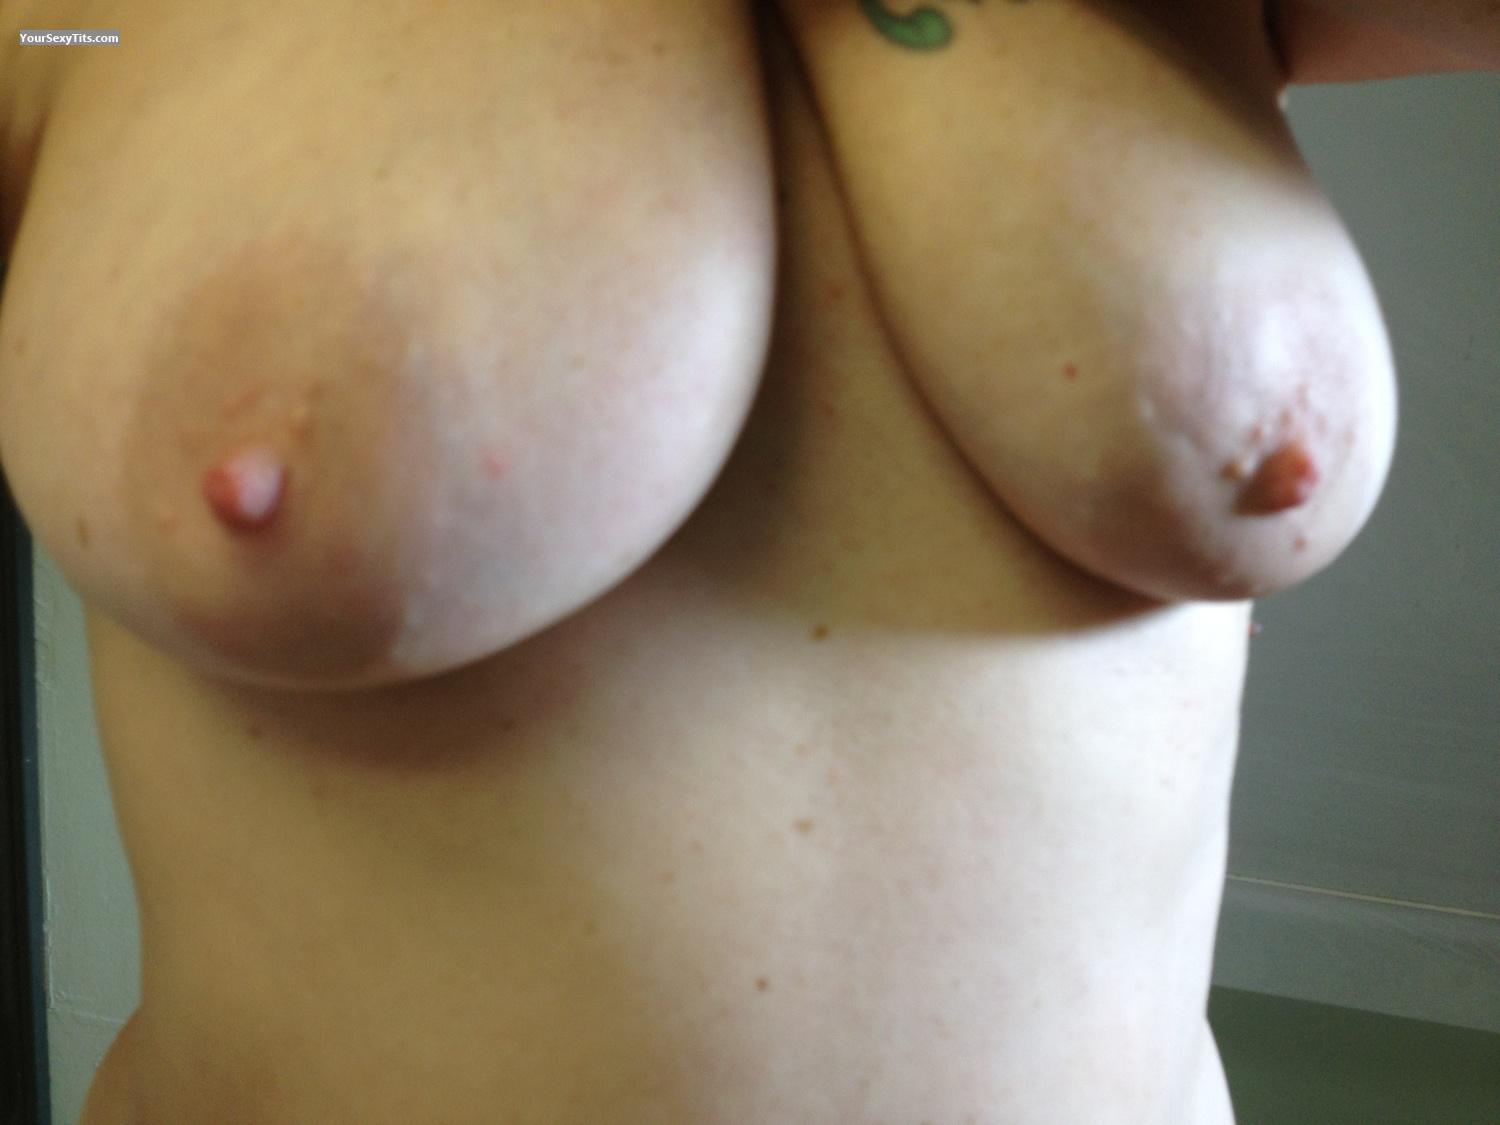 Tit Flash: My Medium Tits By IPhone (Selfie) - Littlebit from United States